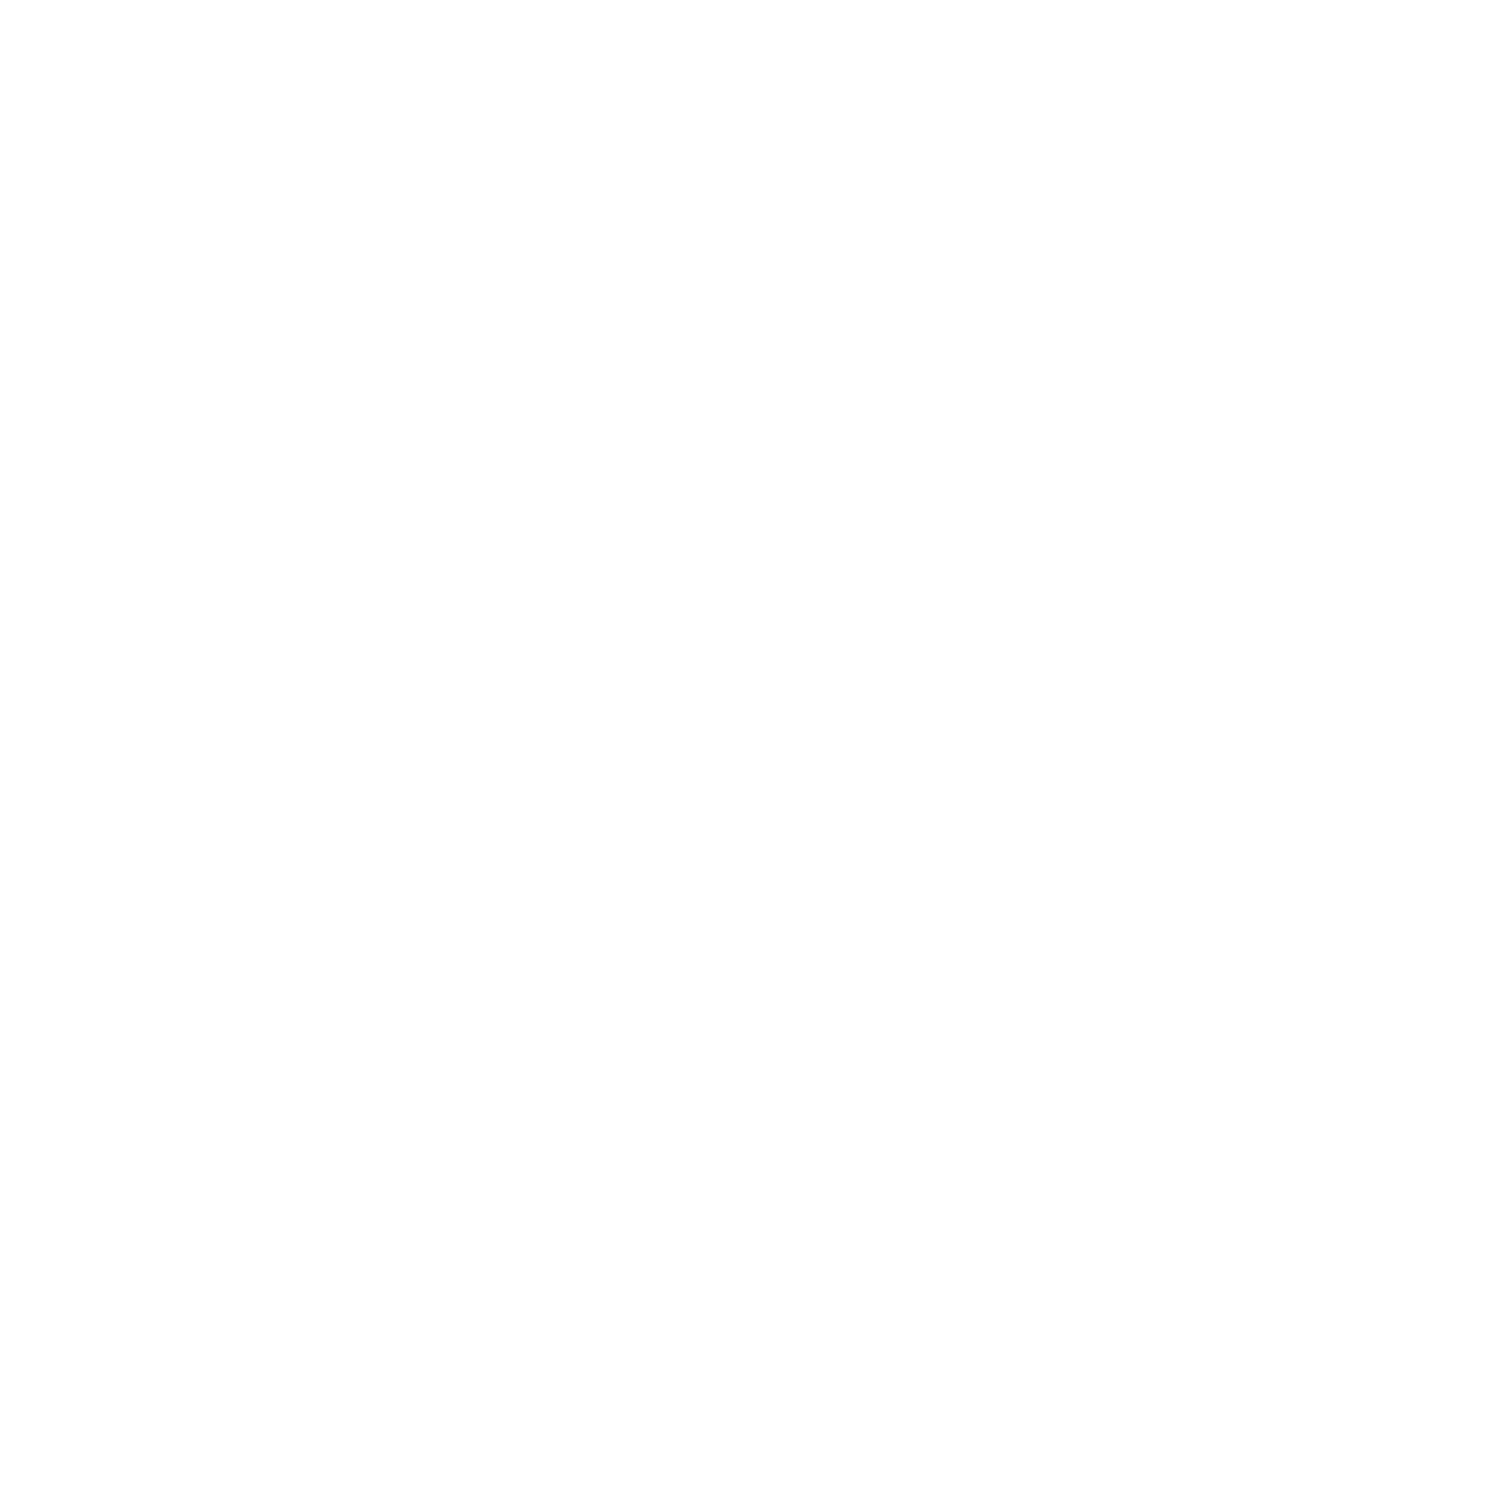 Unboxed Reviews